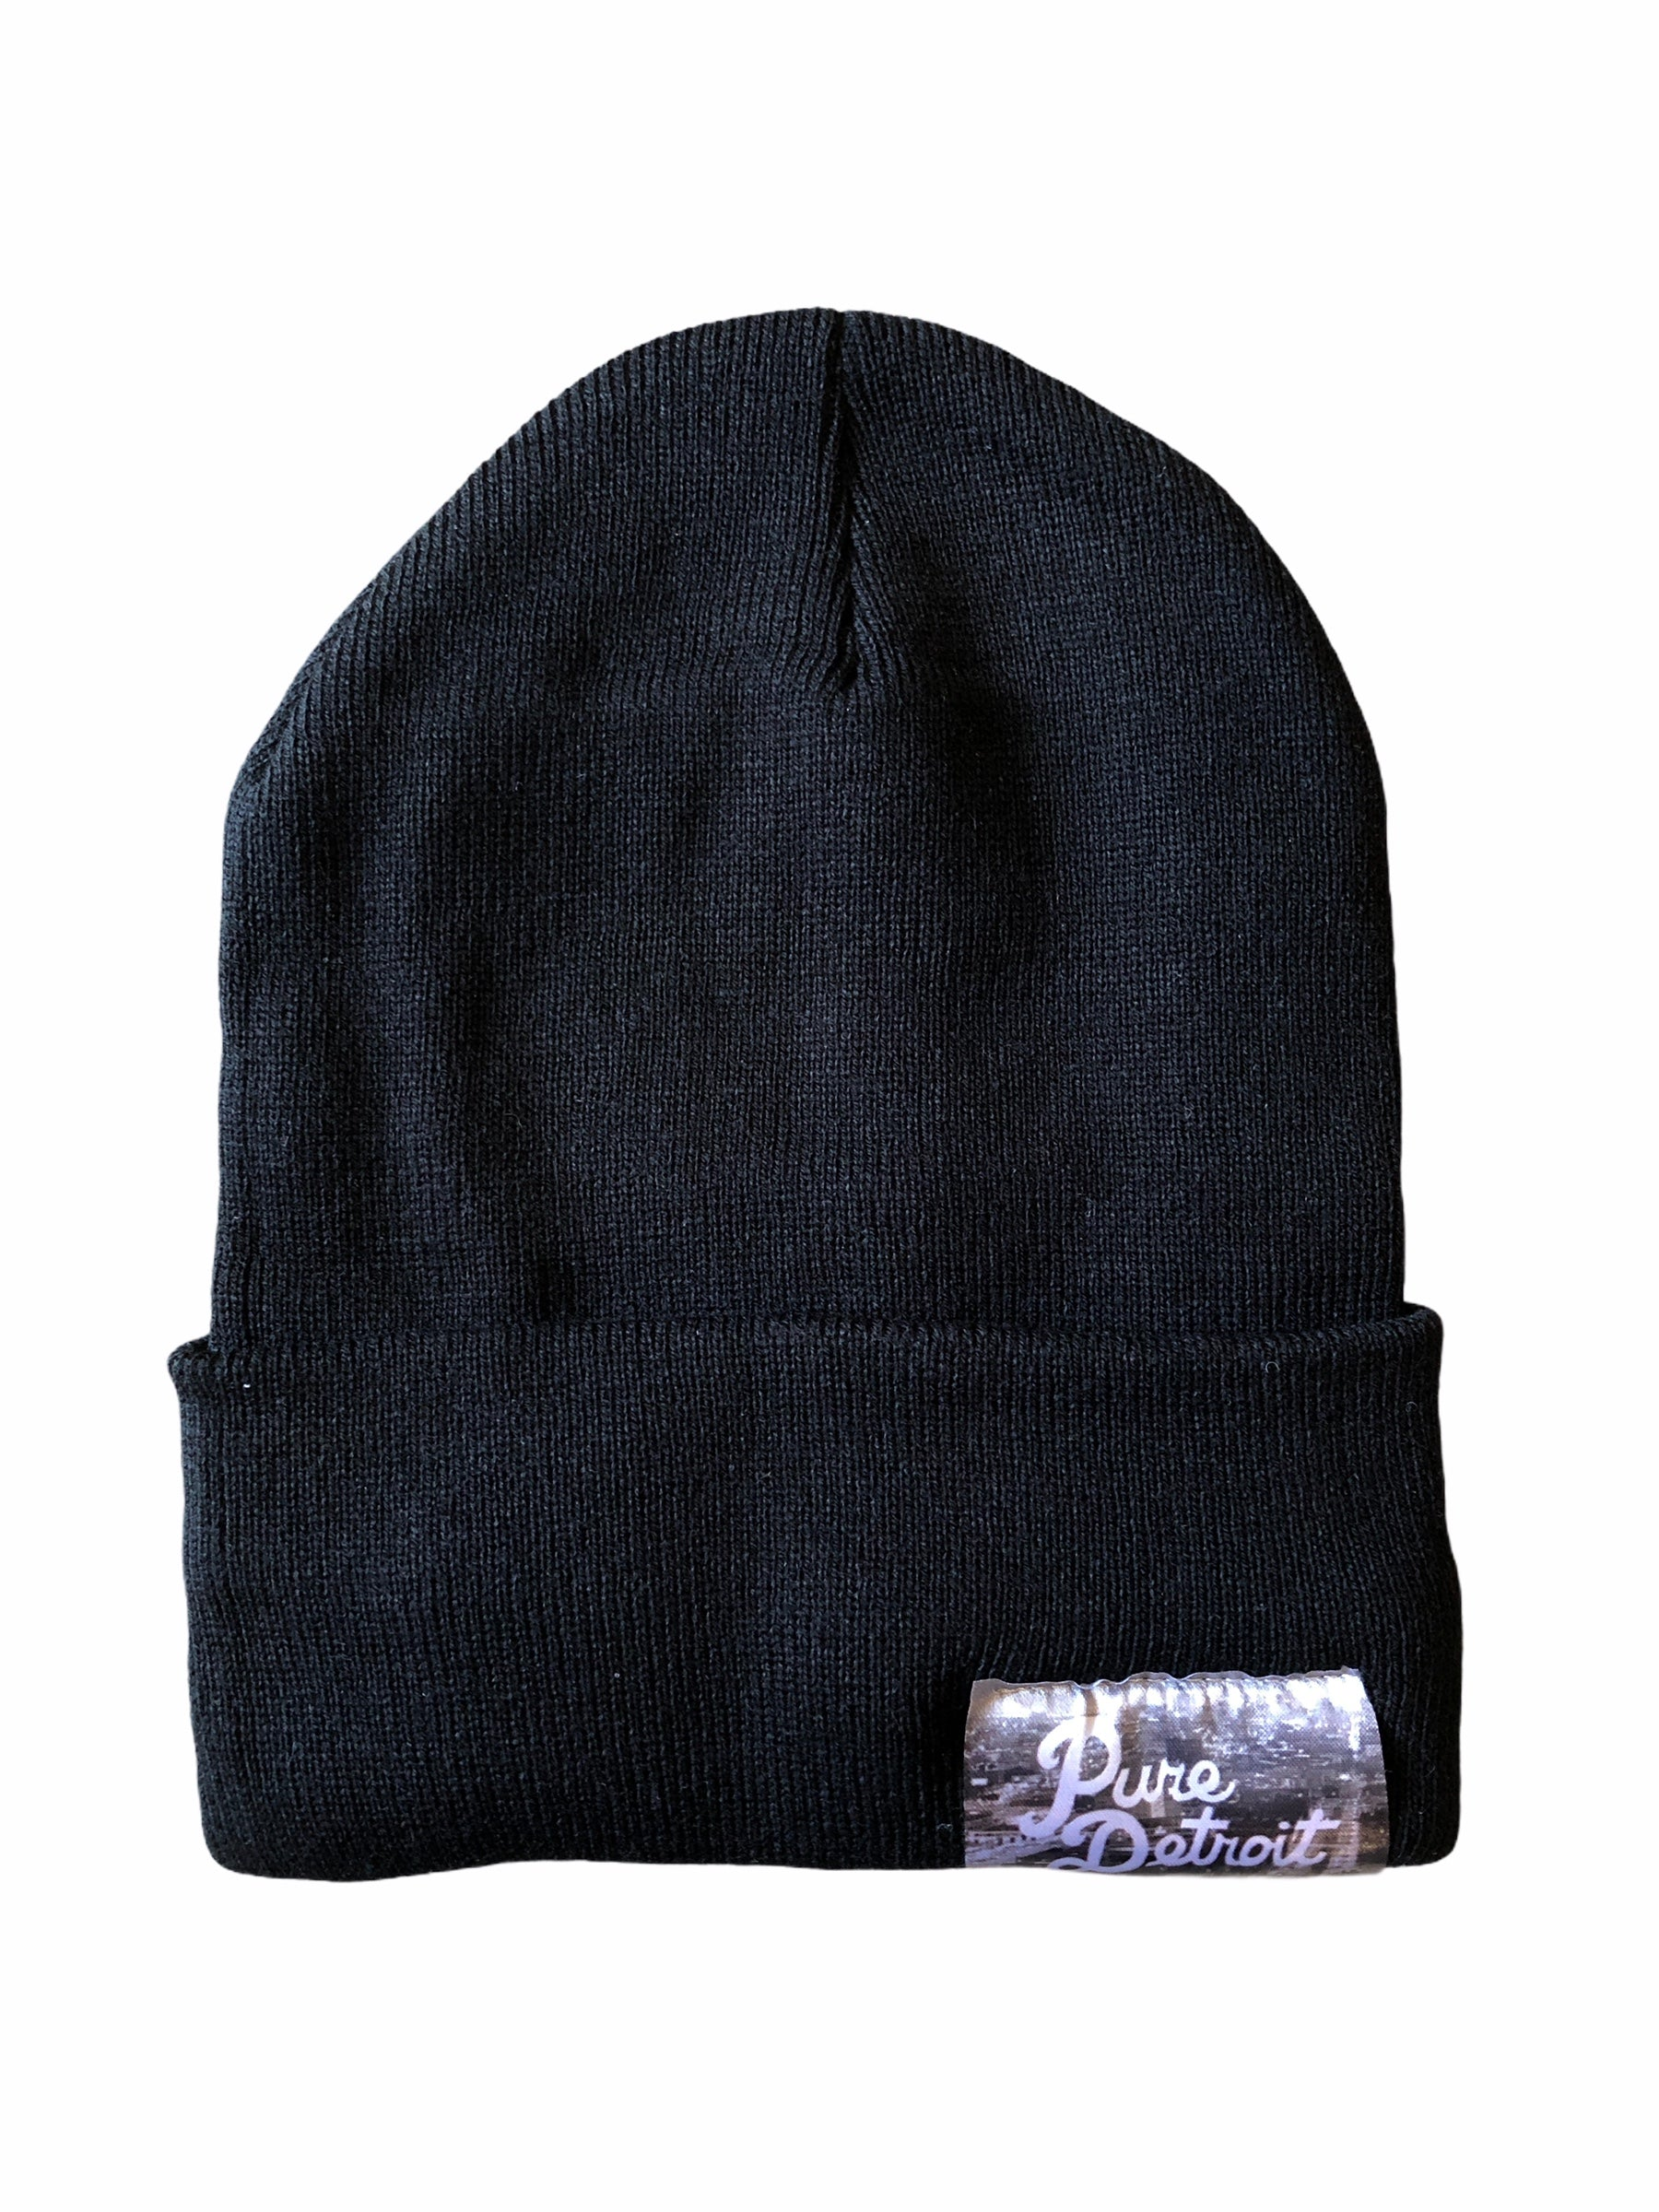 Pure Detroit Cuffed Beanie / Black - Pure Detroit